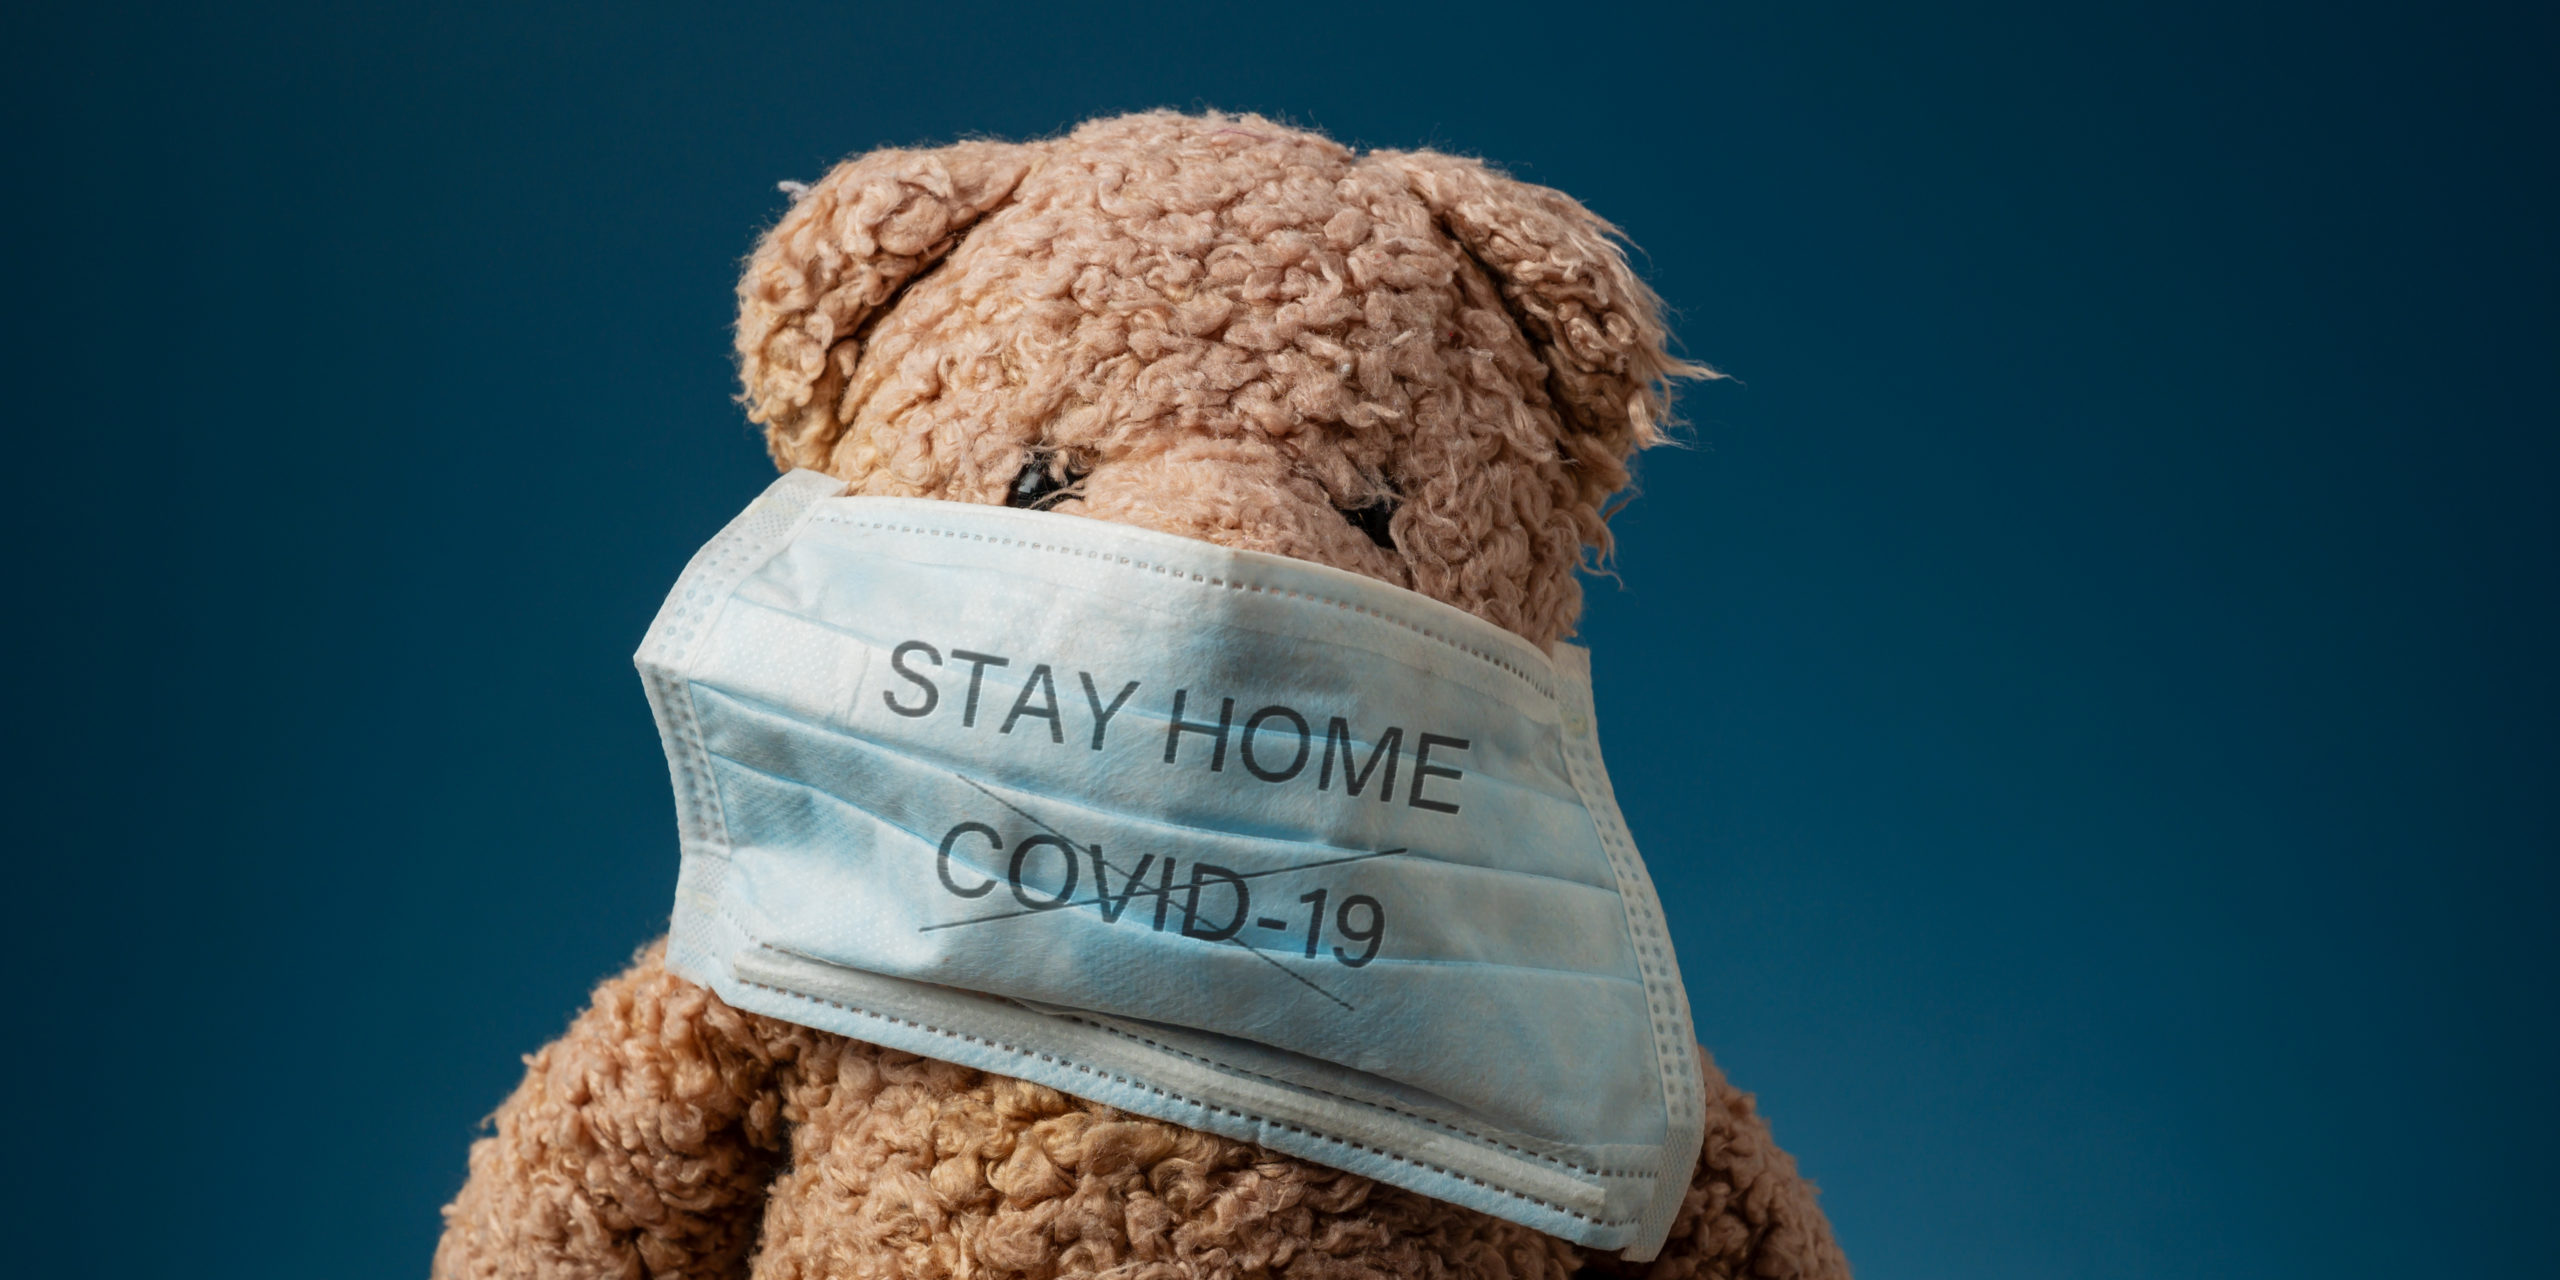 Teddy bear wearing protective medical mask with Stay Home sign and Covid 19 crossed.